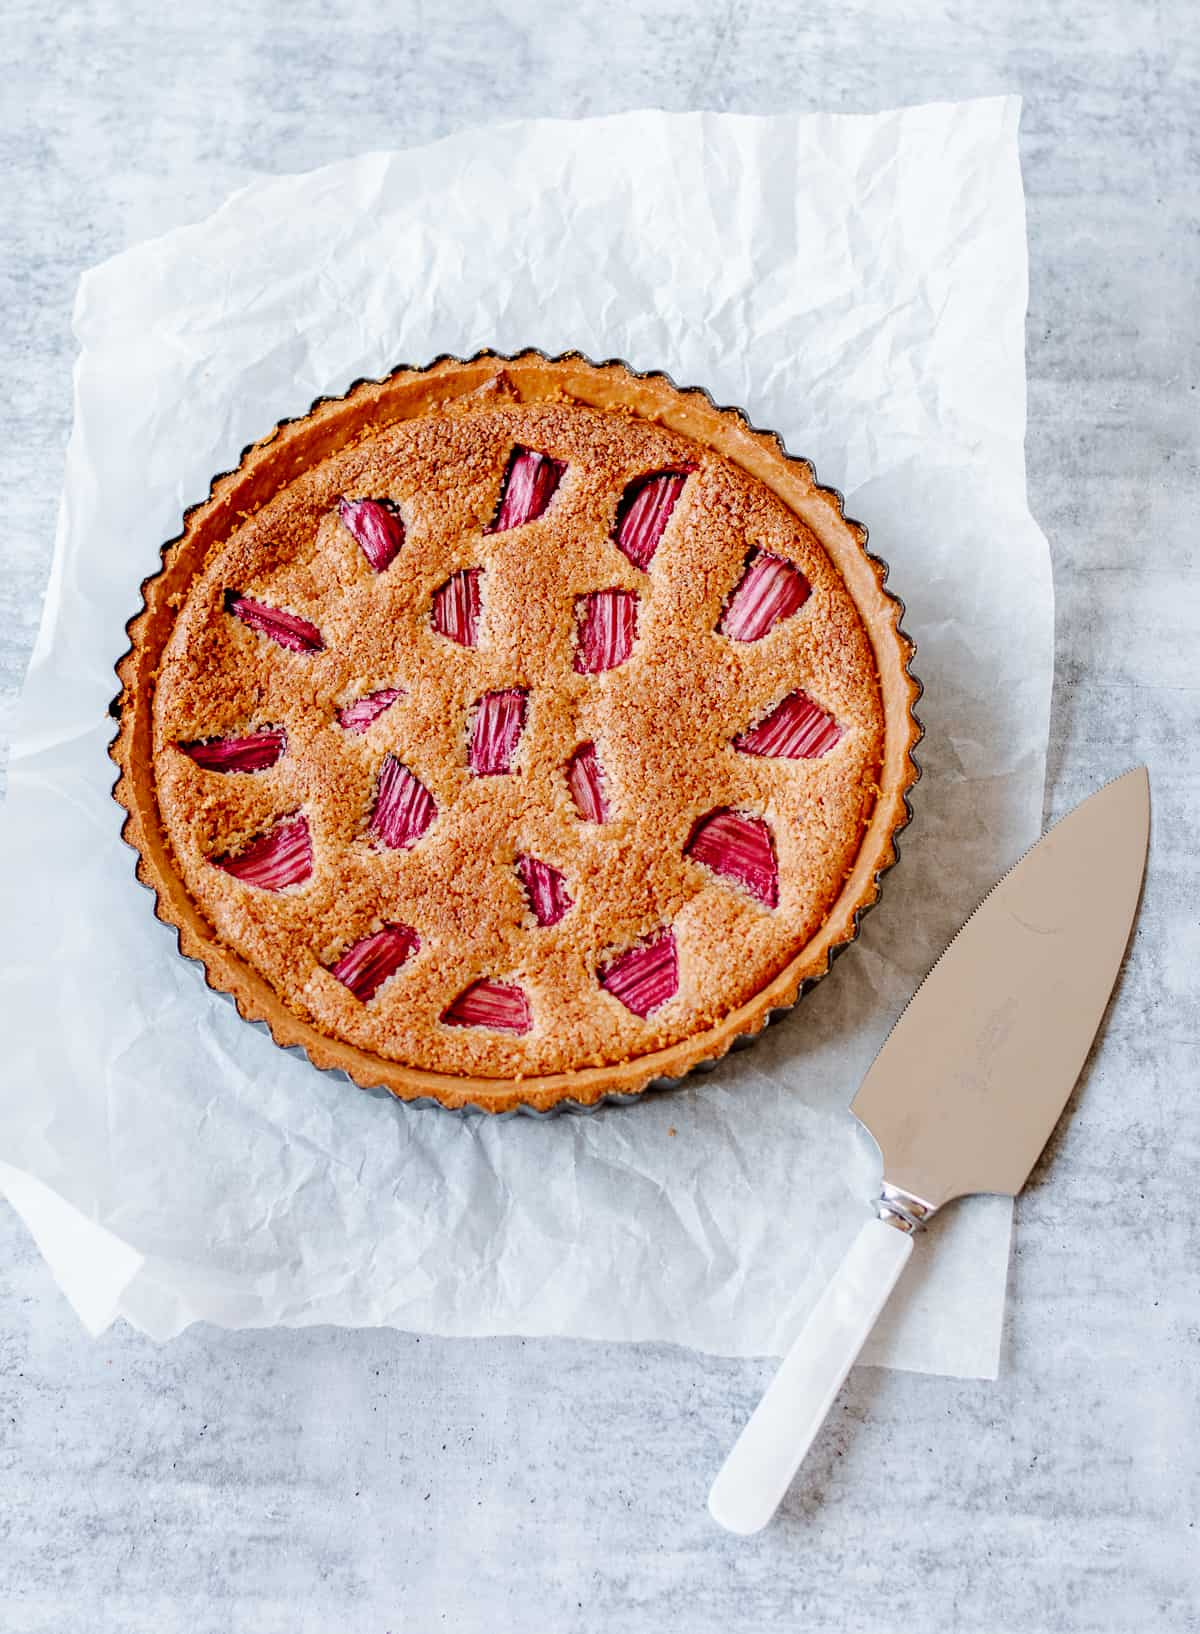 Baked Rhubarb Frangipani tart in round tin with serving spatula